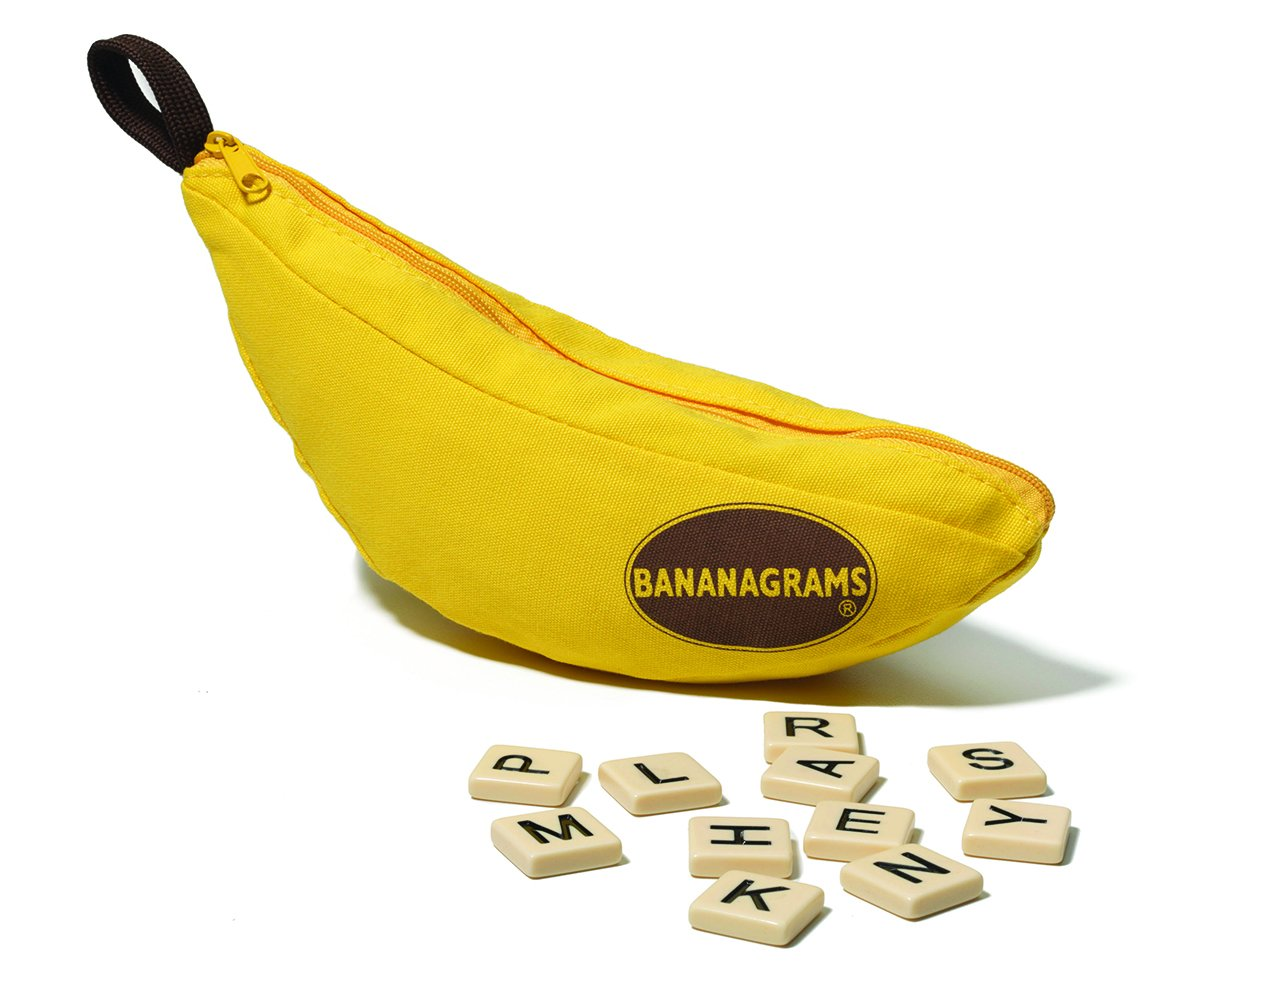 Game Factory GAMEFACTORY 646177 - Bananagrams Glassic, Family Standard Games